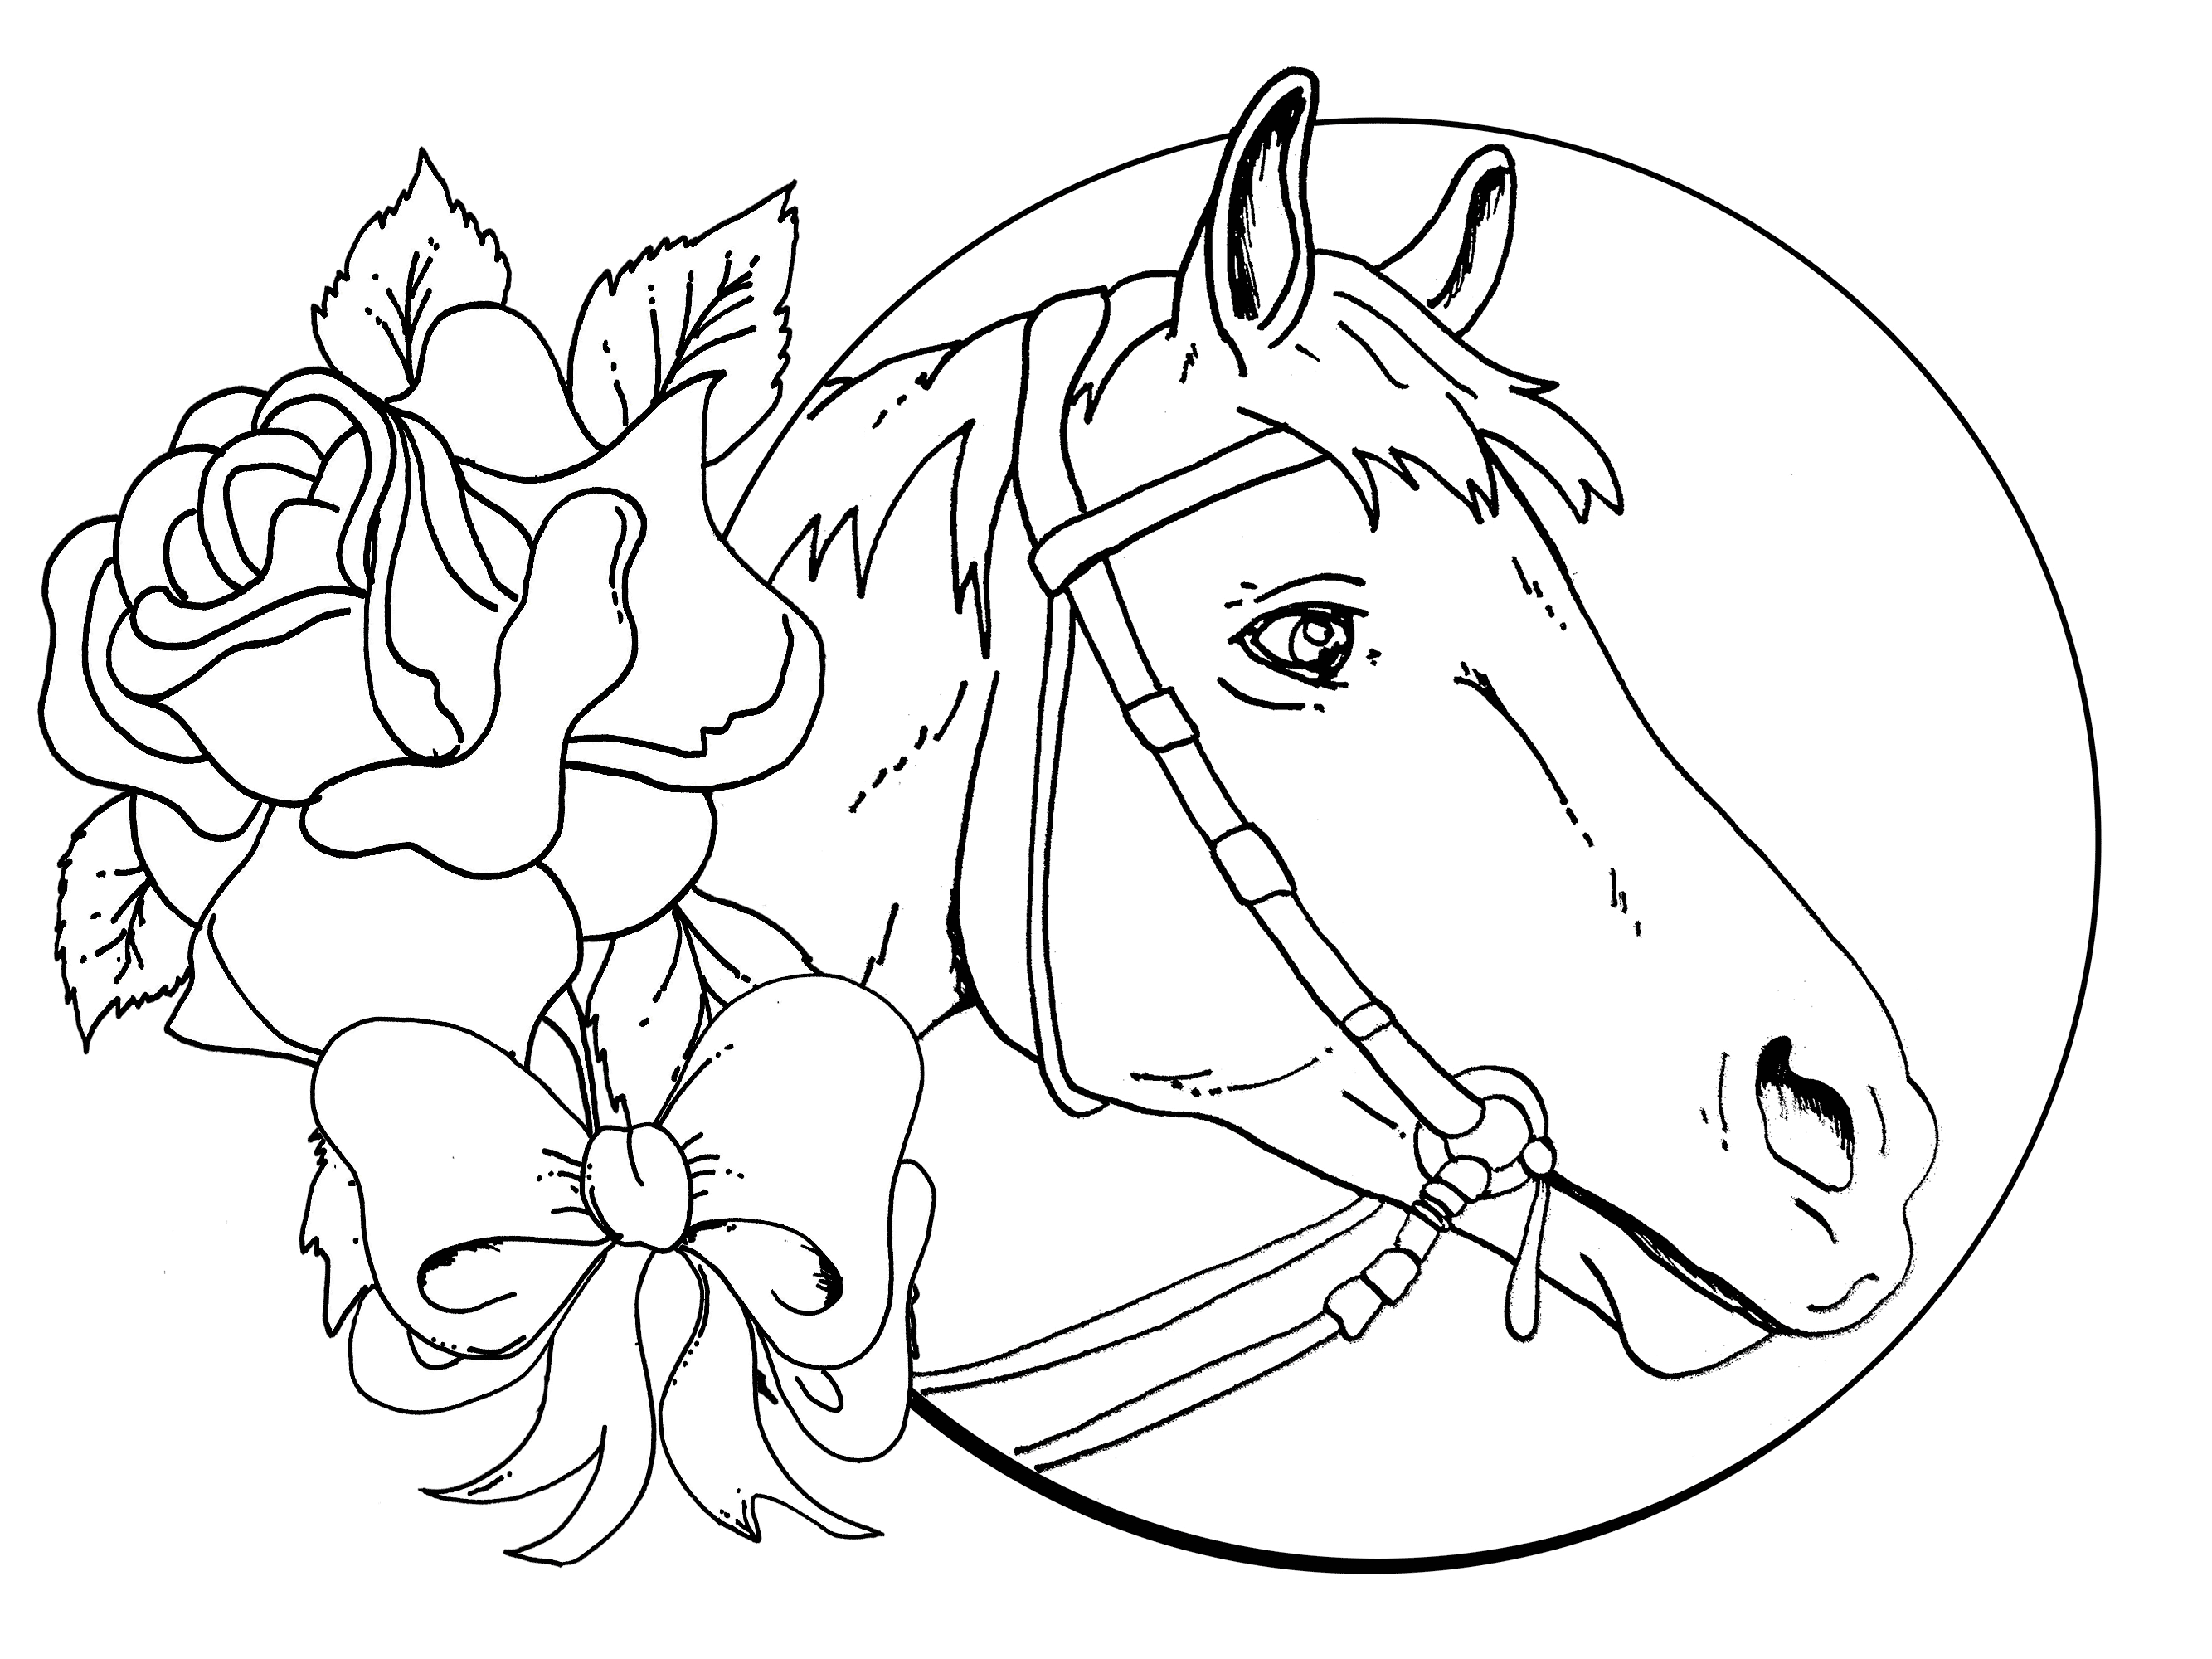 Free Coloring Pages For Girls Coloring Pages For Girls 1  Coloring Kids